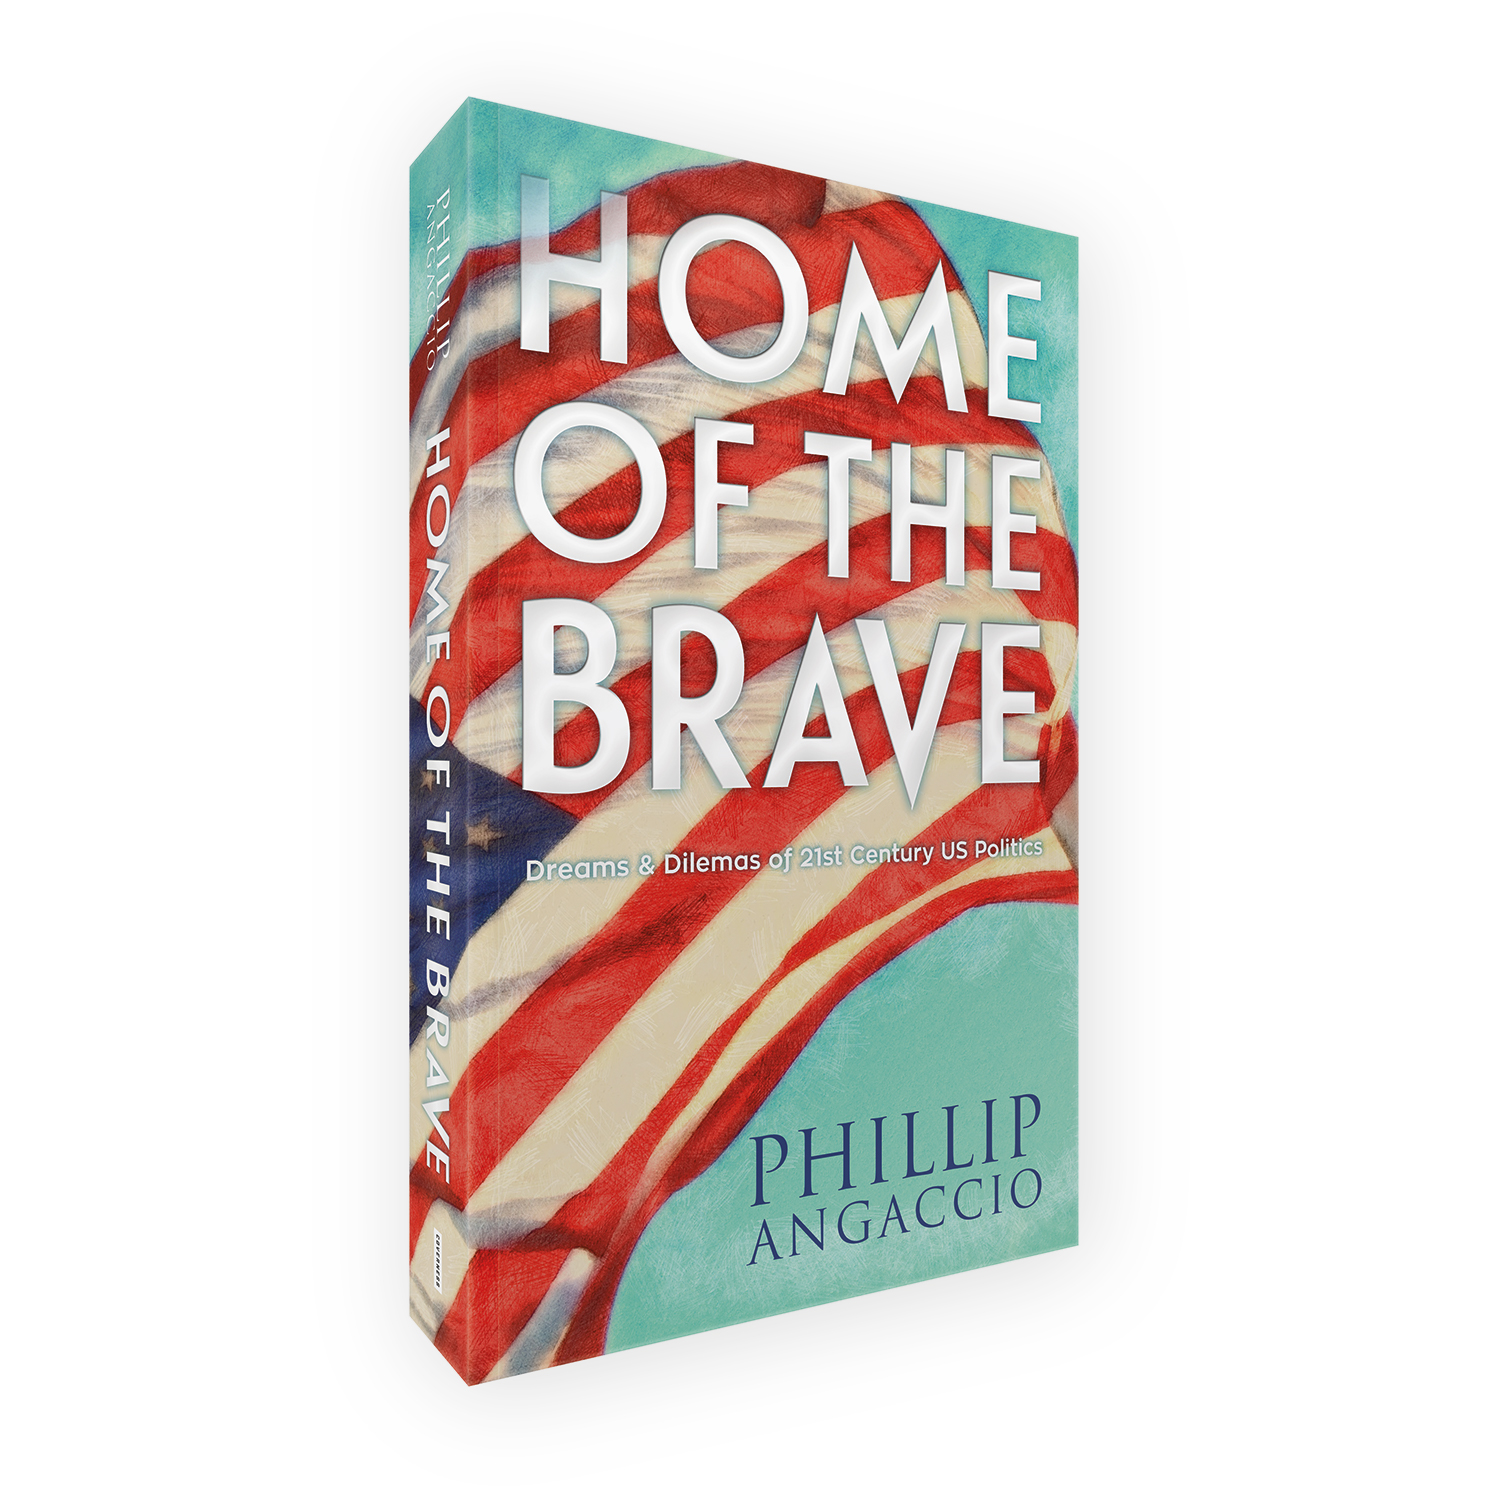 'Home of the Brave' is a bespoke cover design for a modern politically-themed book. The book cover was designed by Mark Thomas, of coverness.com. To find out more about my book design services, please visit www.coverness.com.